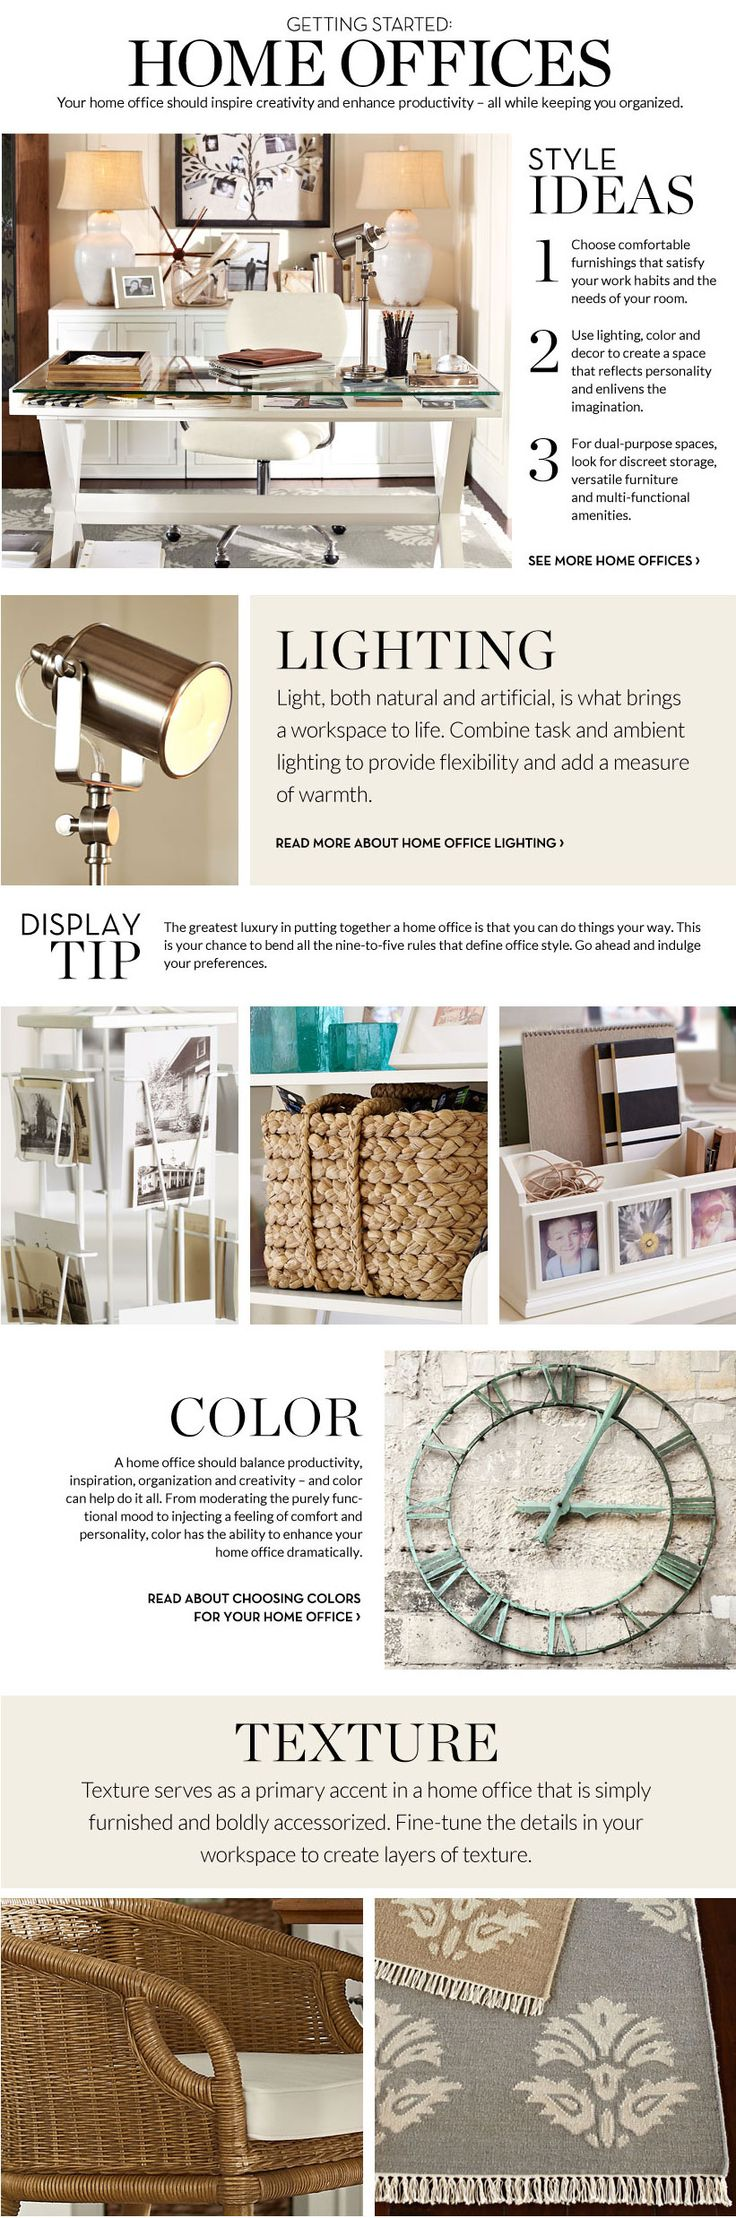 Einfache home-office-design-idee  best cabinet images on pinterest  furniture home ideas and bedroom